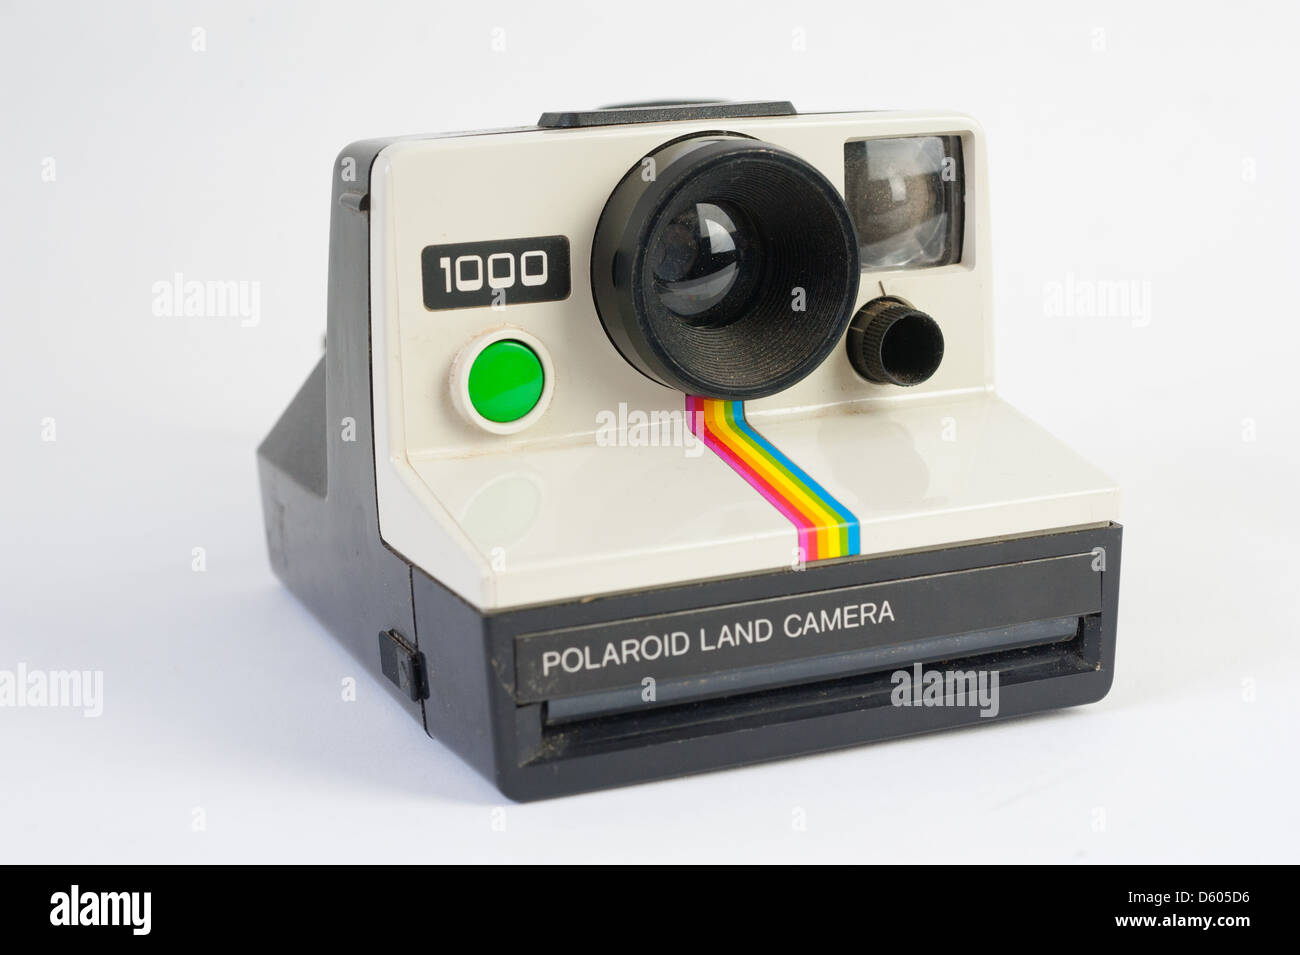 Panasonic Land Camera 1000 - Stock Image